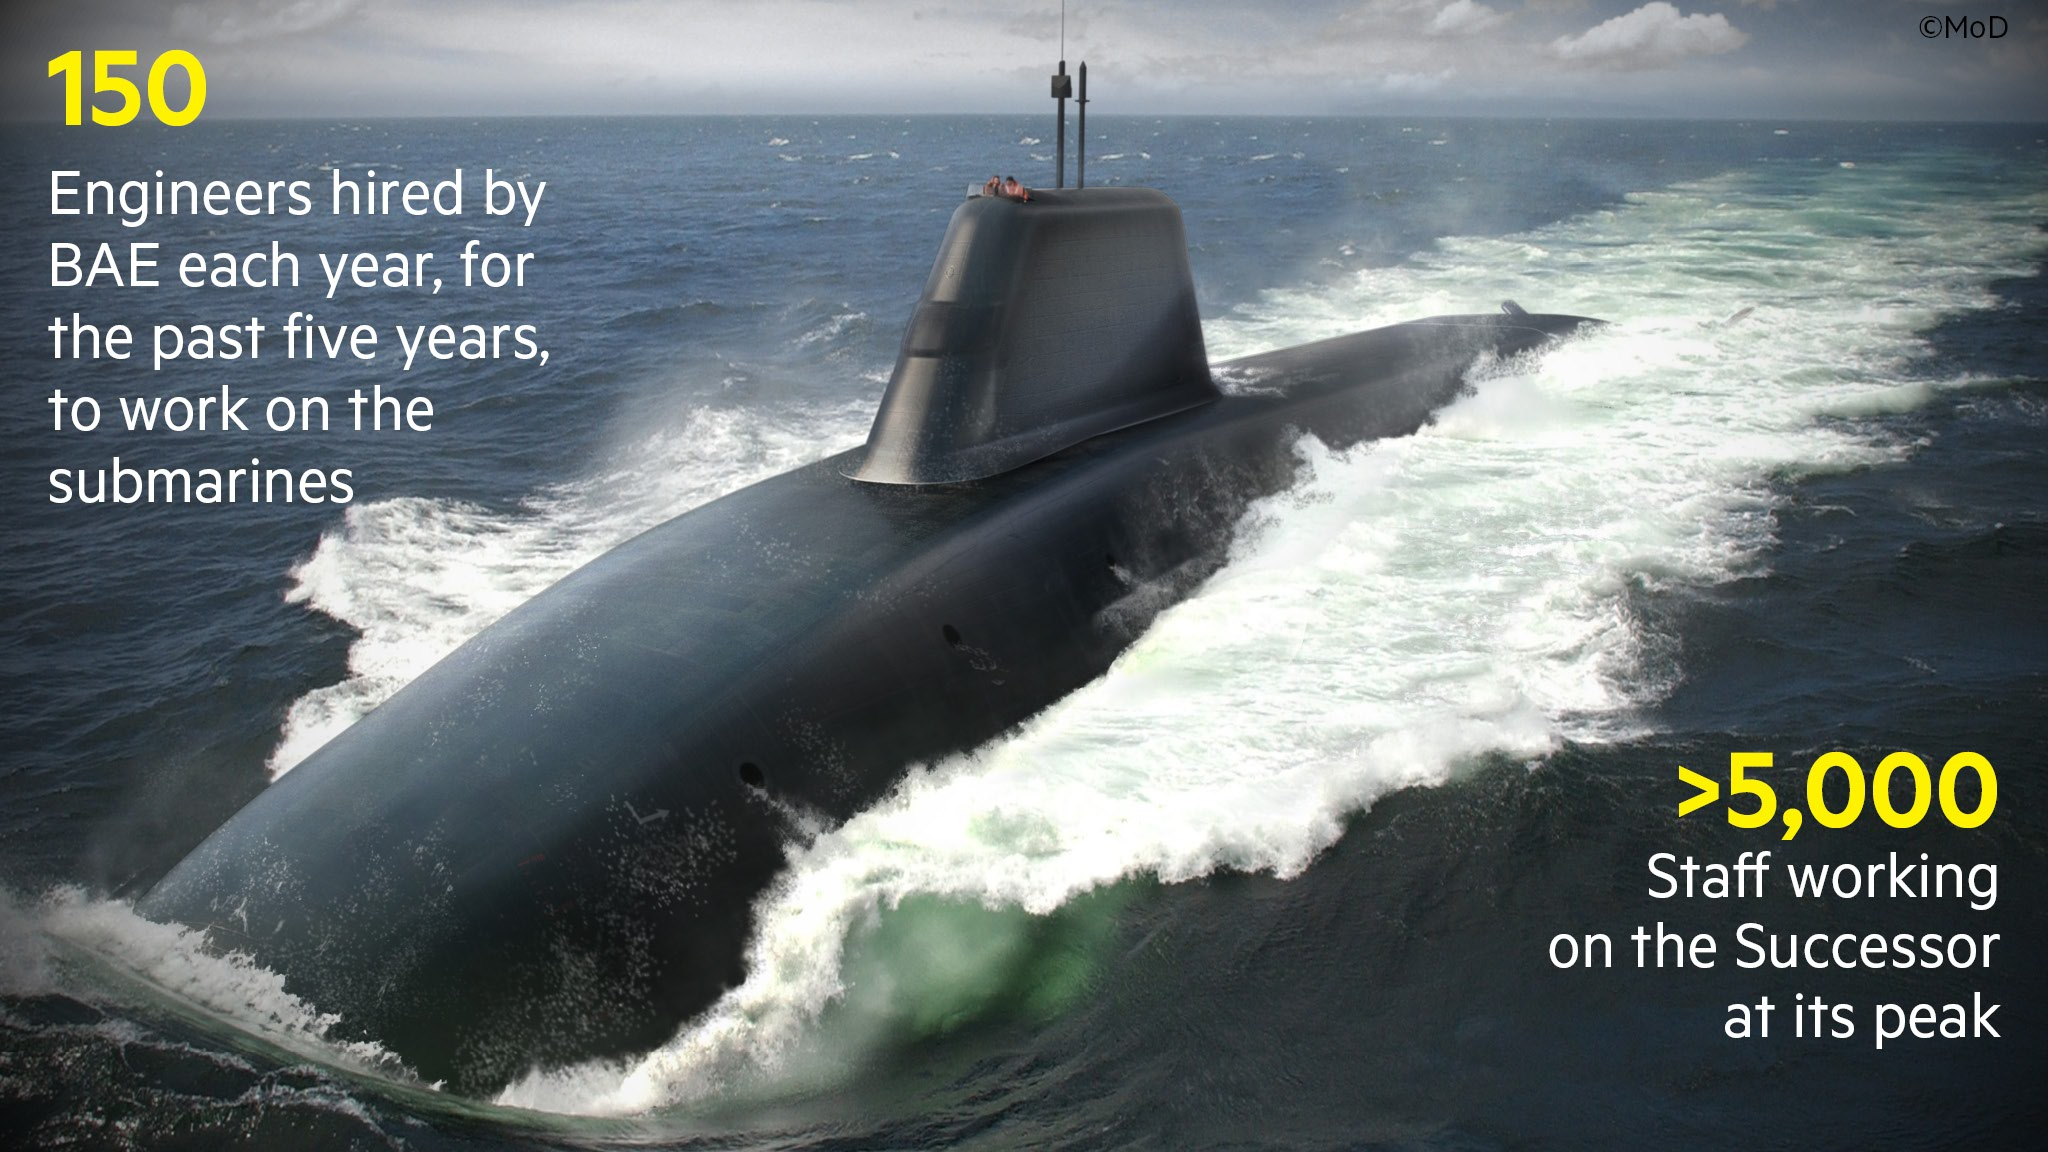 nuclear submarine project looks to take lessons on board